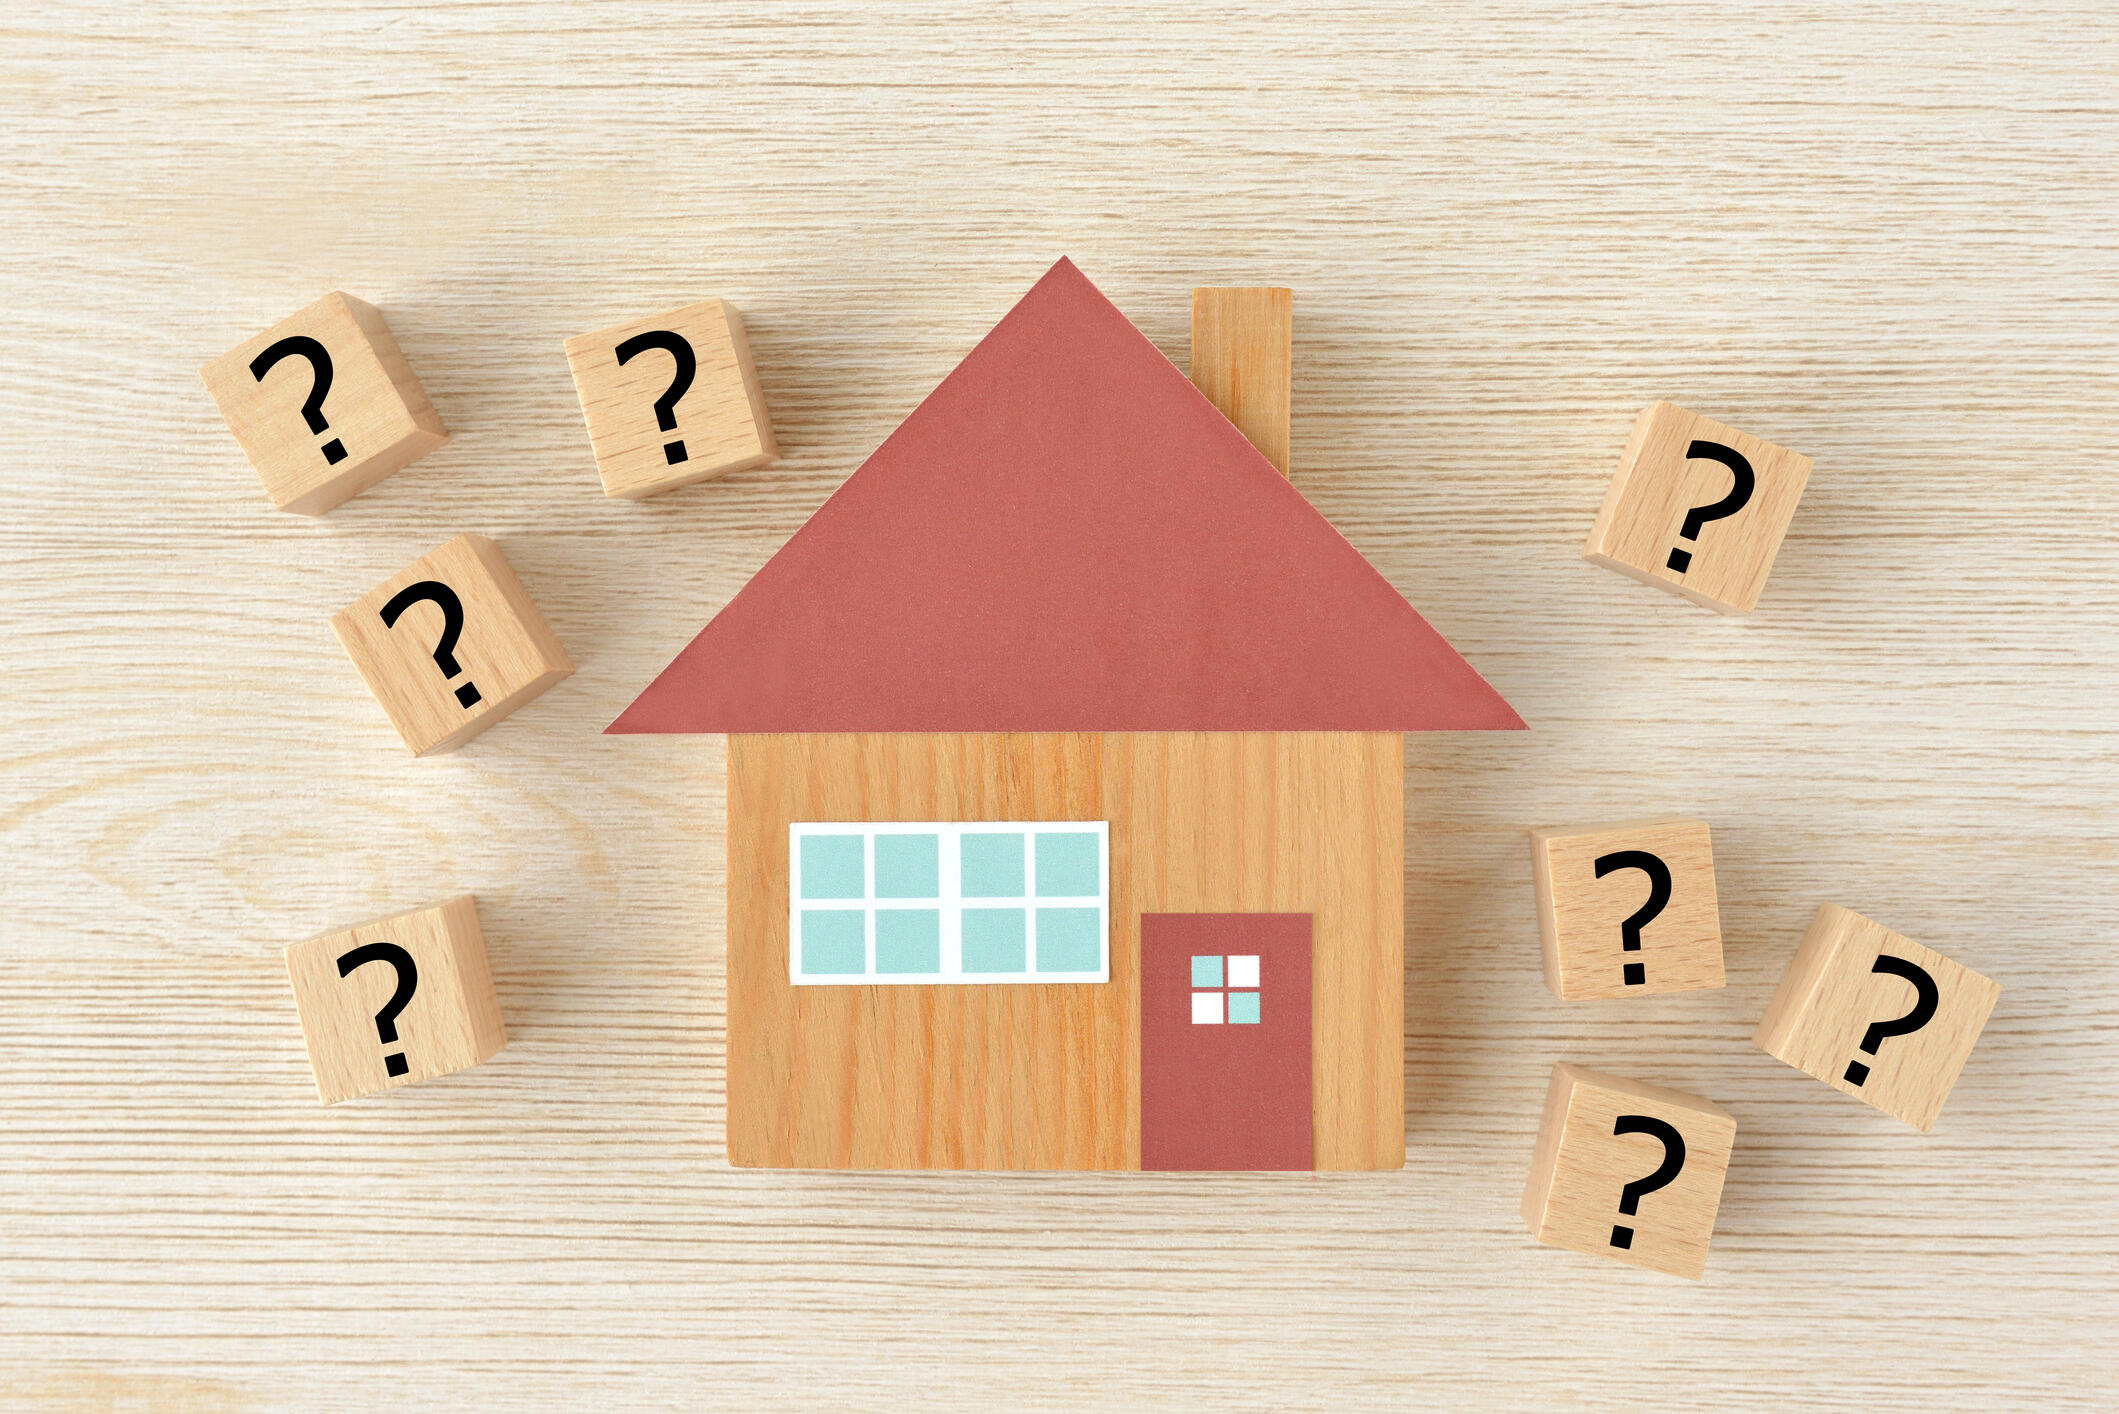 Home with question mark blocks